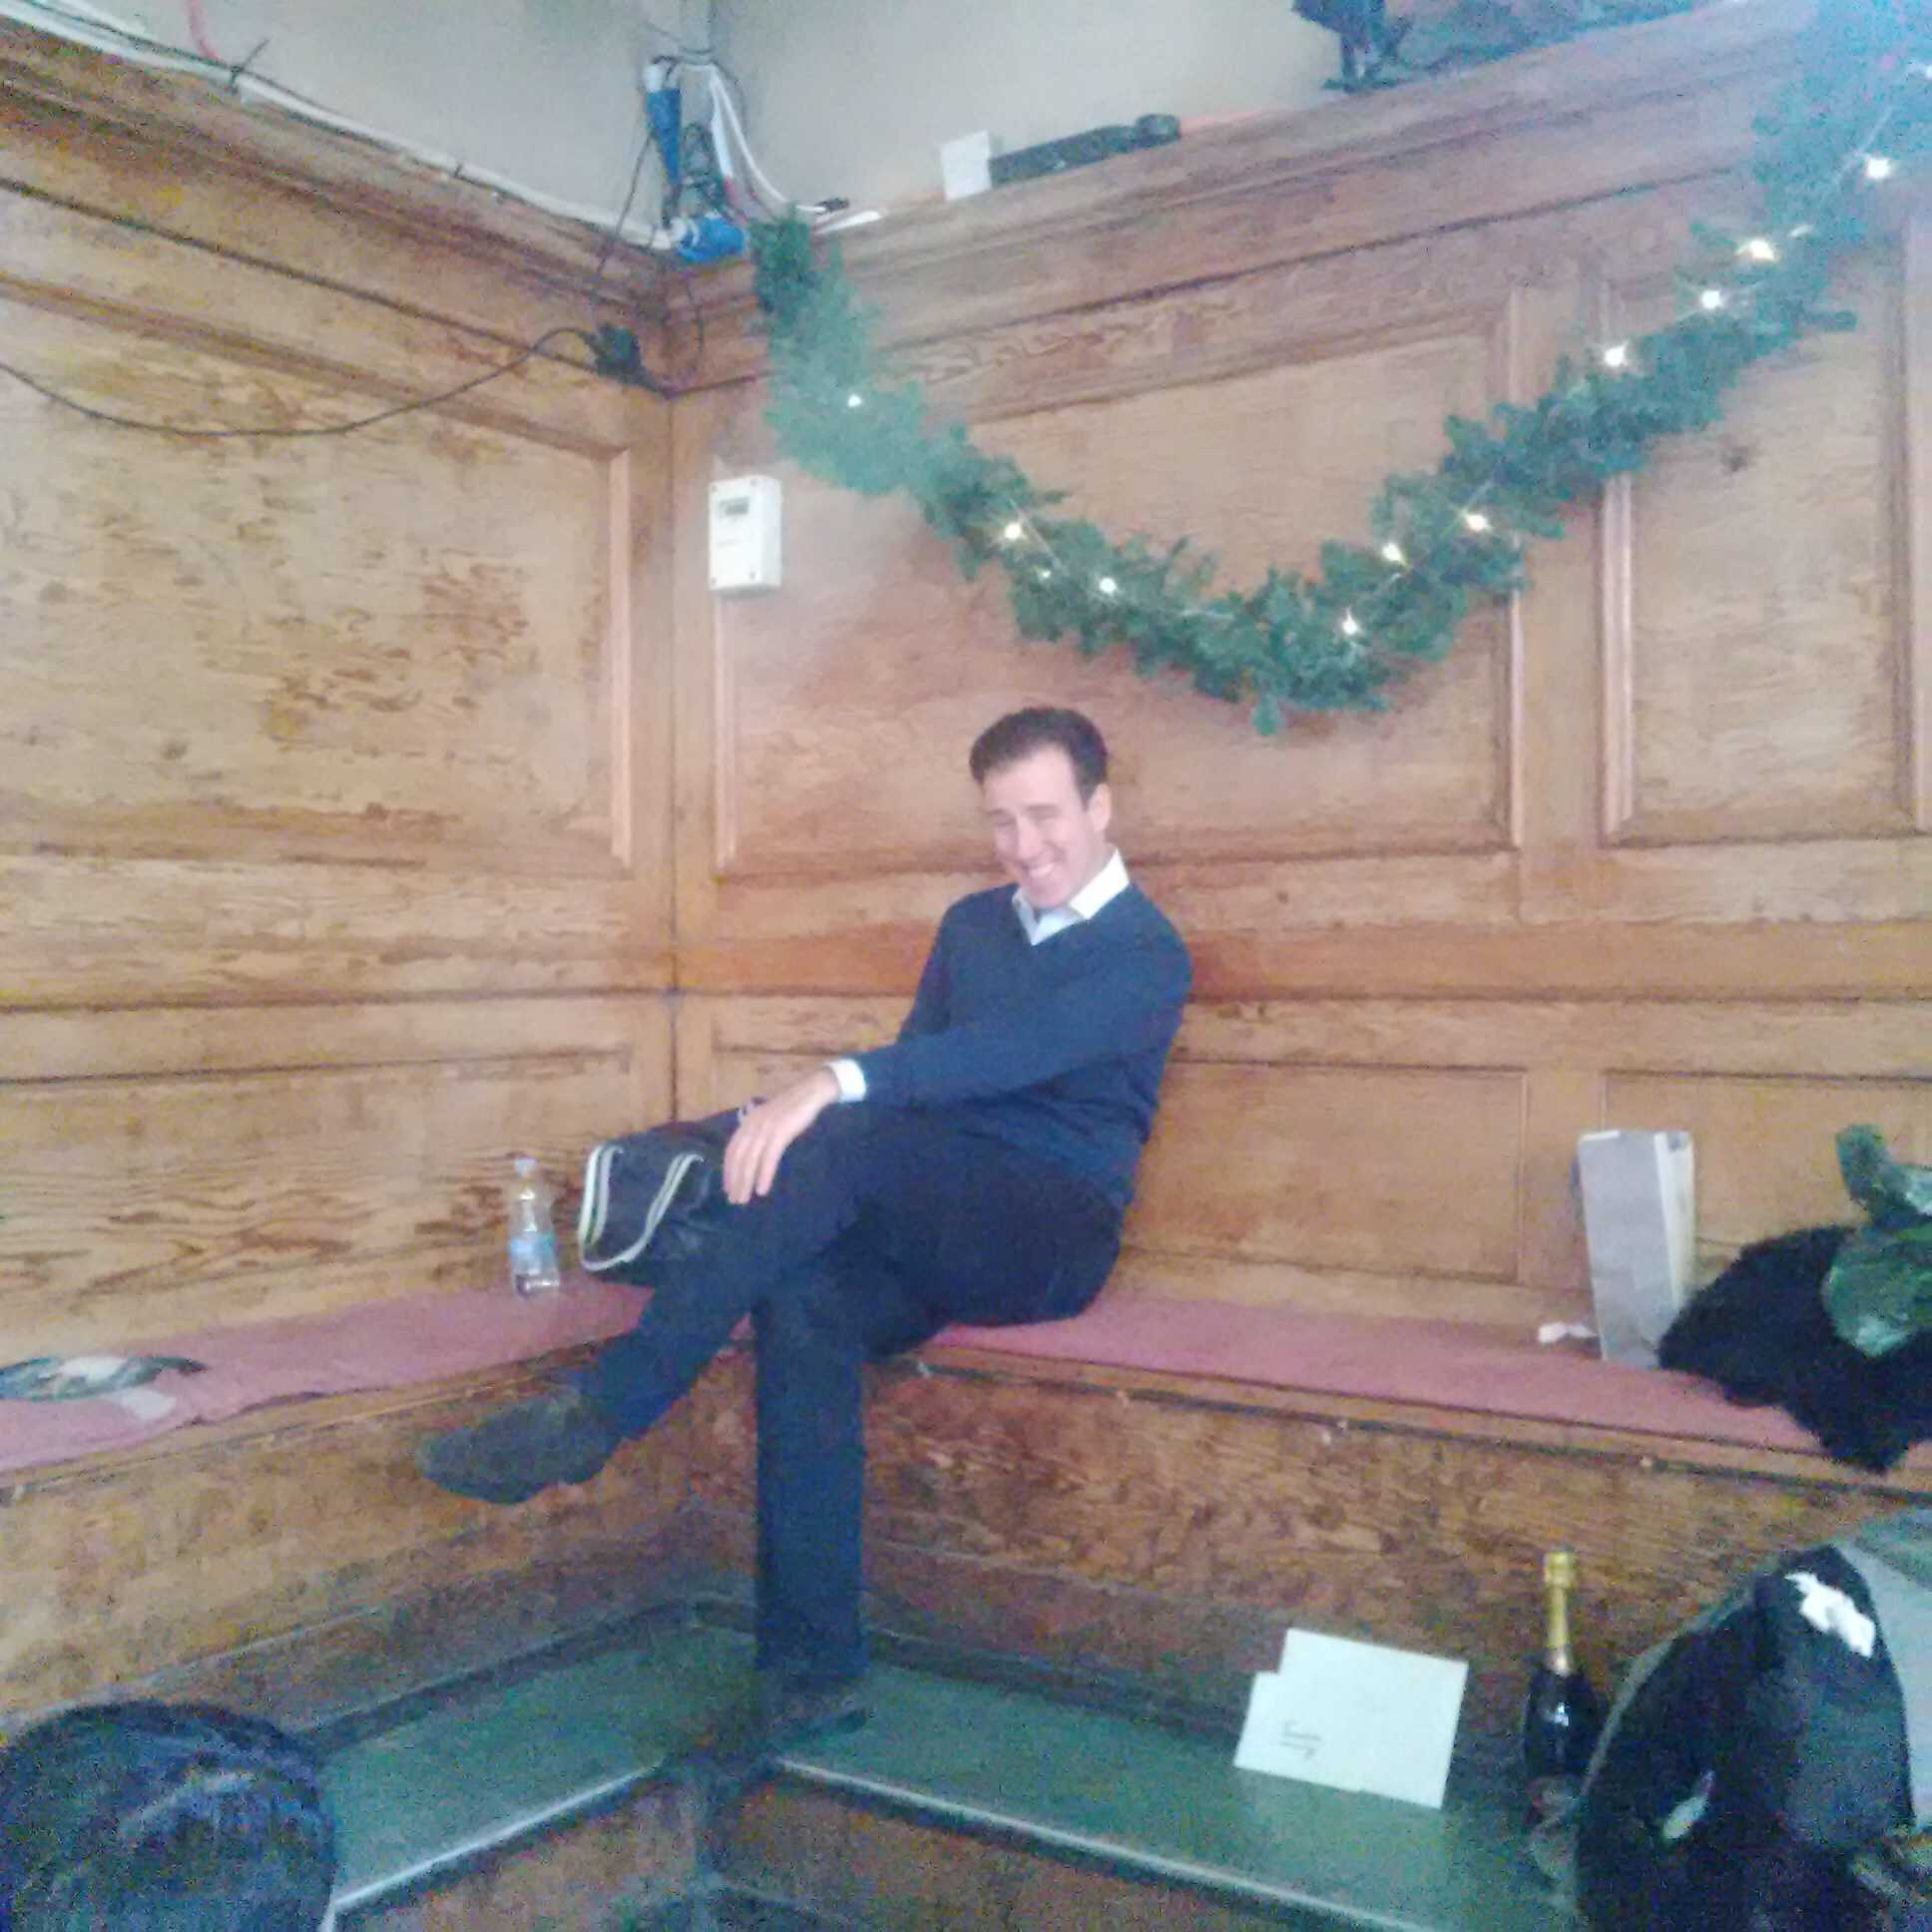 """RT @judmoo: Strictly rehearsals.....and look who's been sent to sit in the corner for being """"beyond hilarious"""". @TheAntonDuBeke. http://t.c…"""